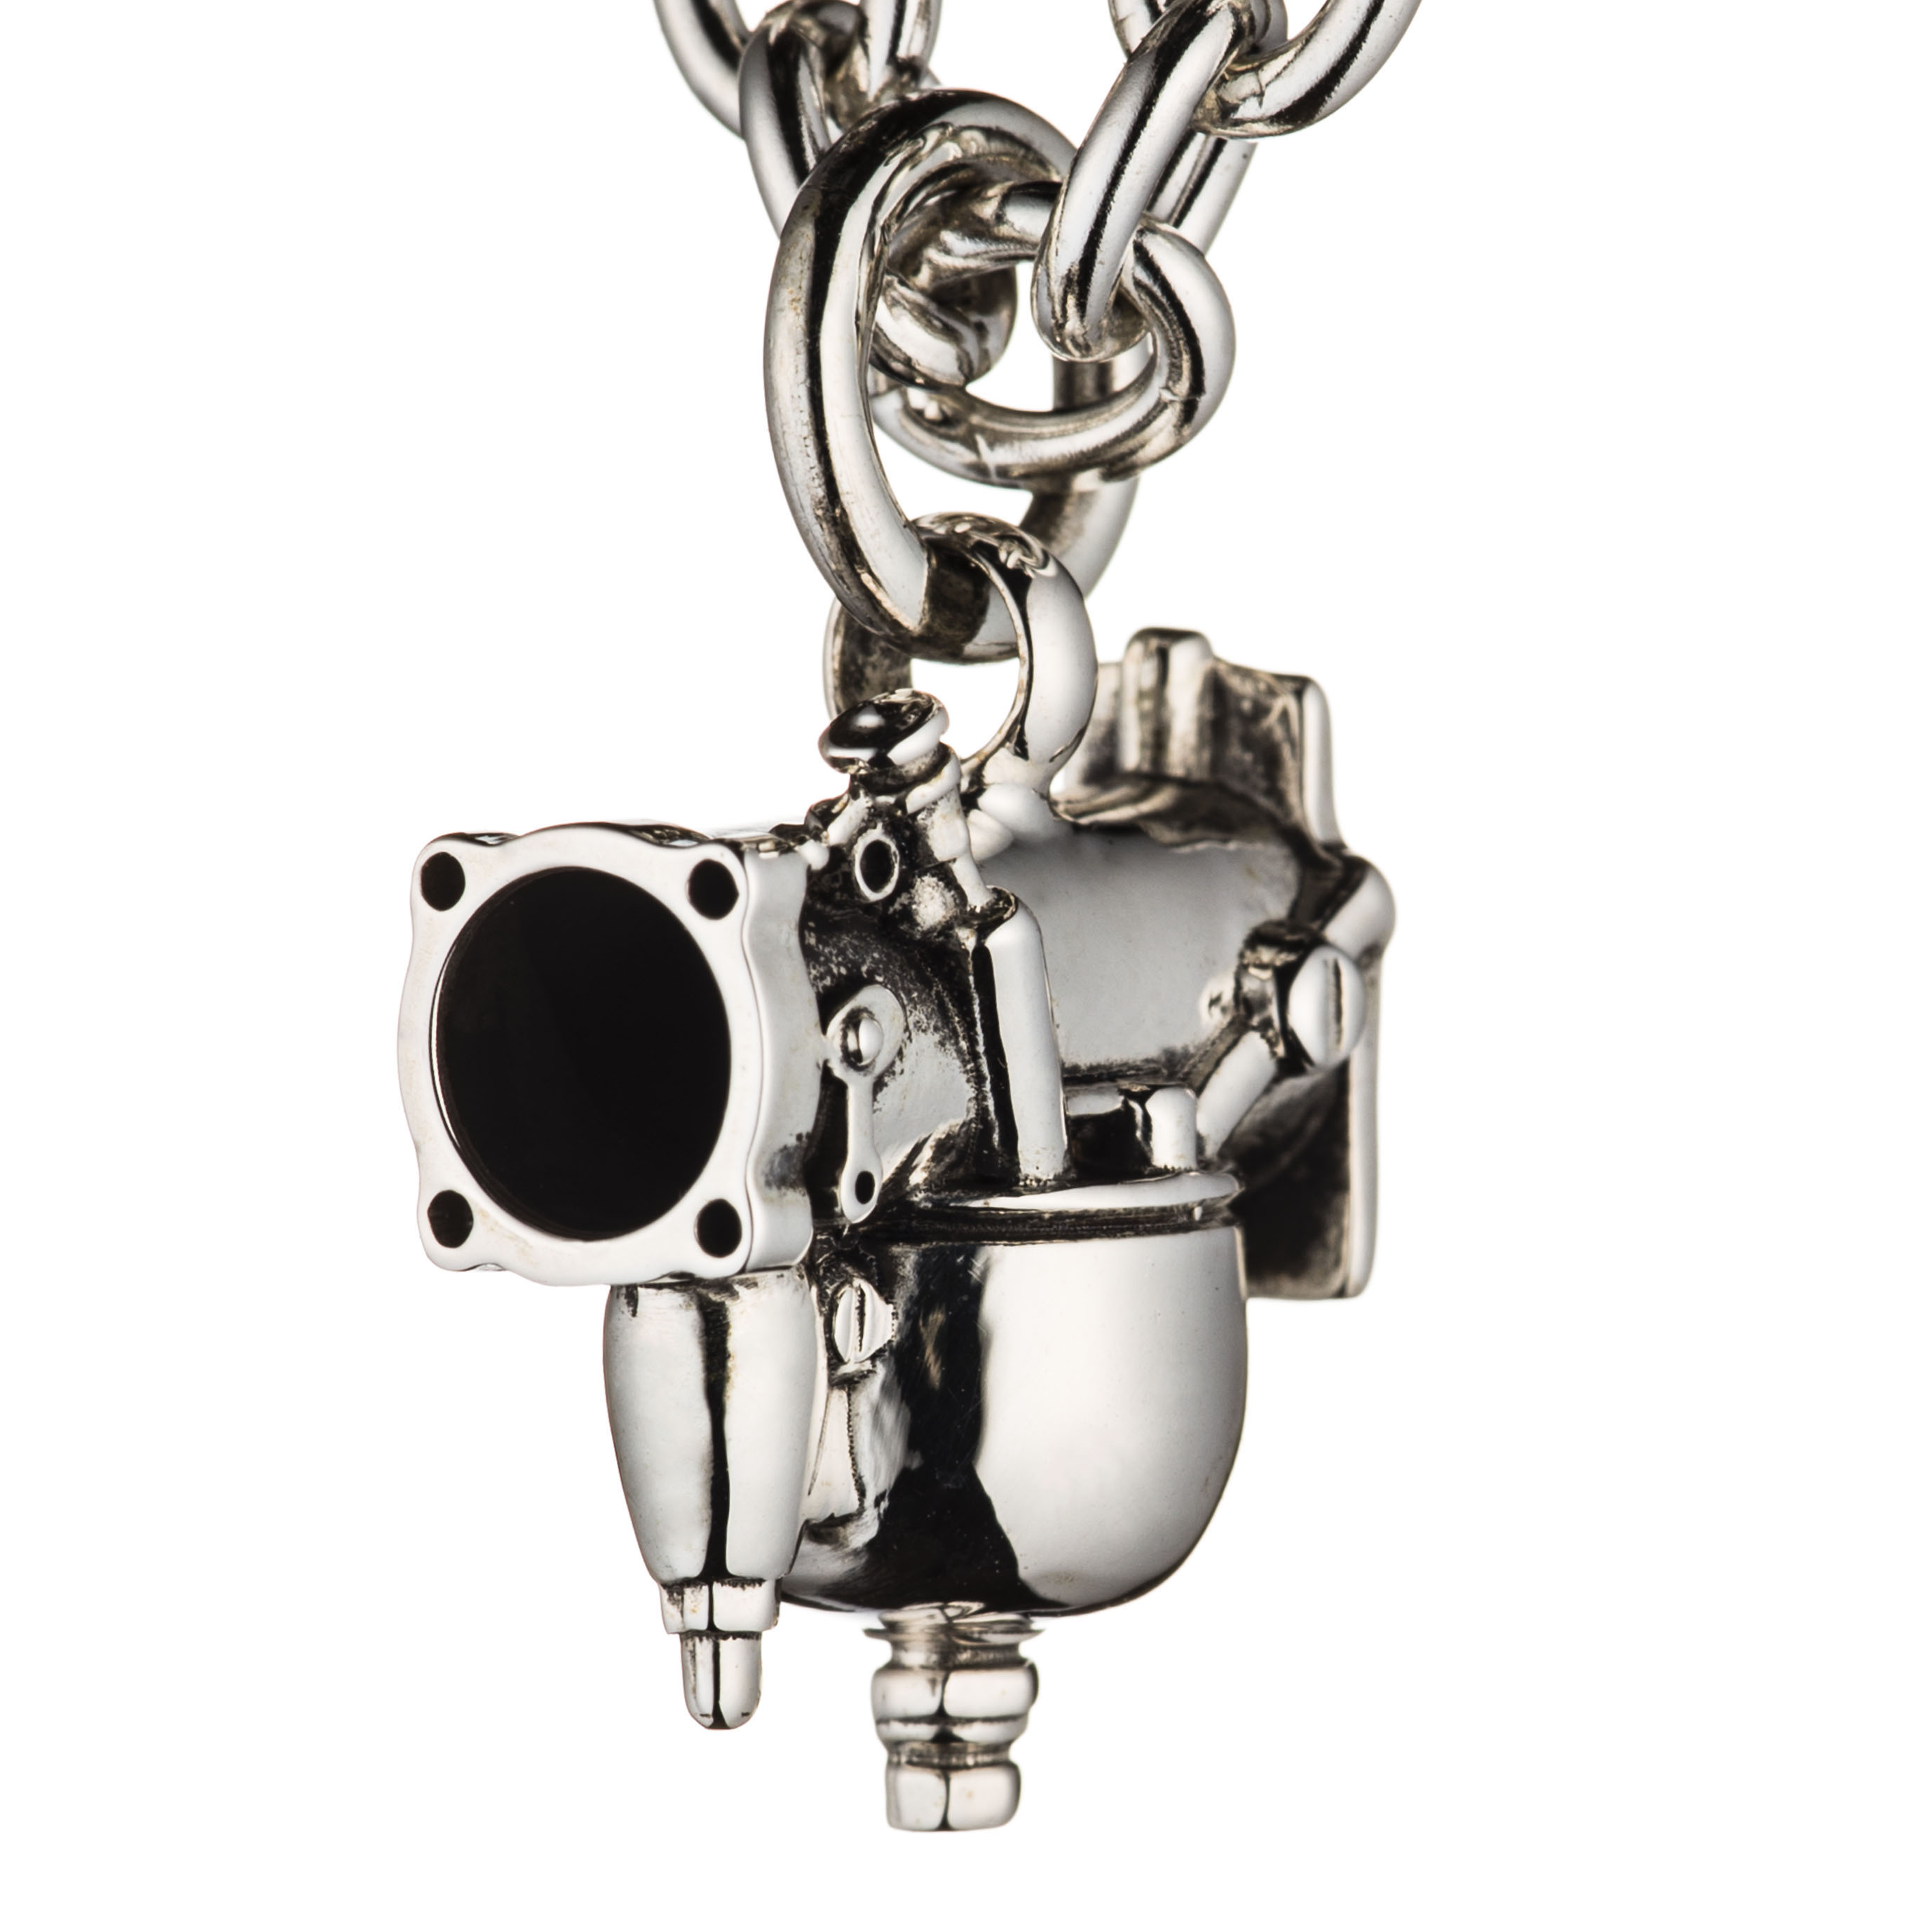 LINKERT CARBURETOR PENDANT